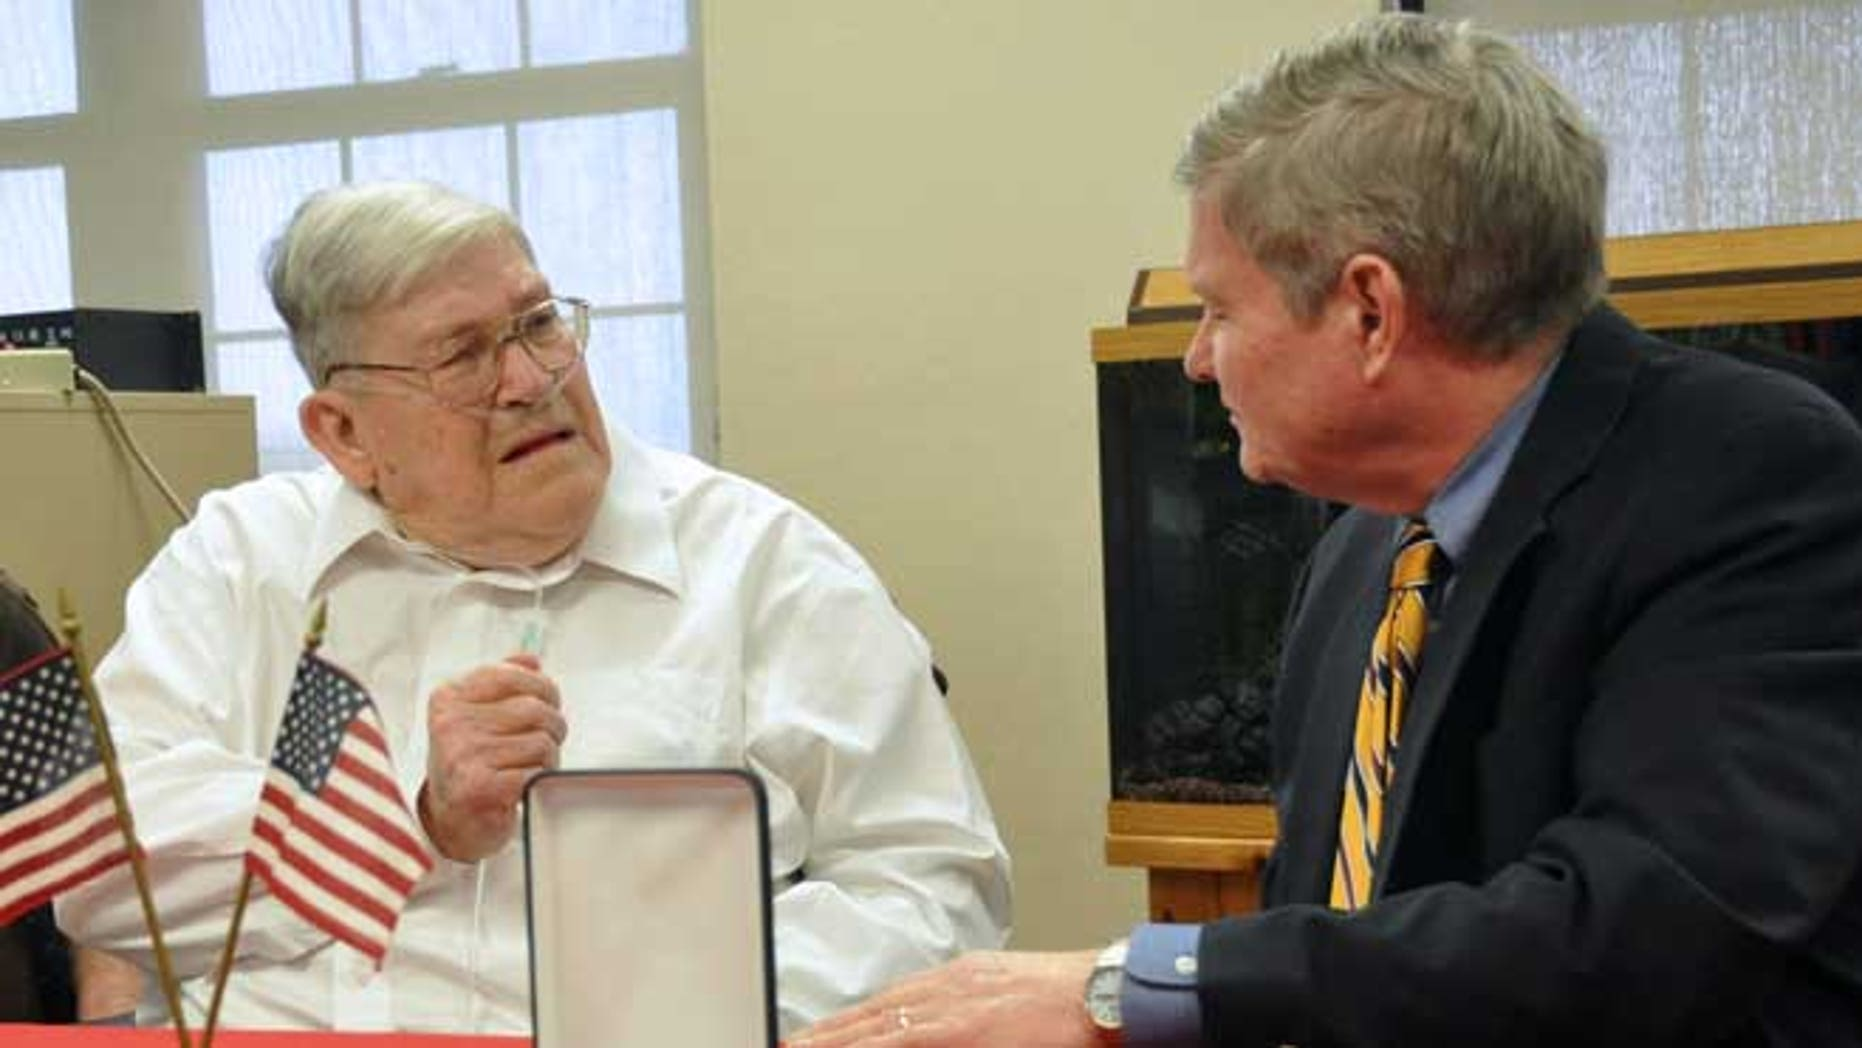 May 1, 2013: World War II veteran Charles Bledsoe, 88, left, talks with U.S. Sen. Tim Johnson, D-S.D., as he's awarded a Purple Heart and Bronze Star for injuries sustained in combat  at the Veterans Administration hospital in Sioux Falls, S.D.